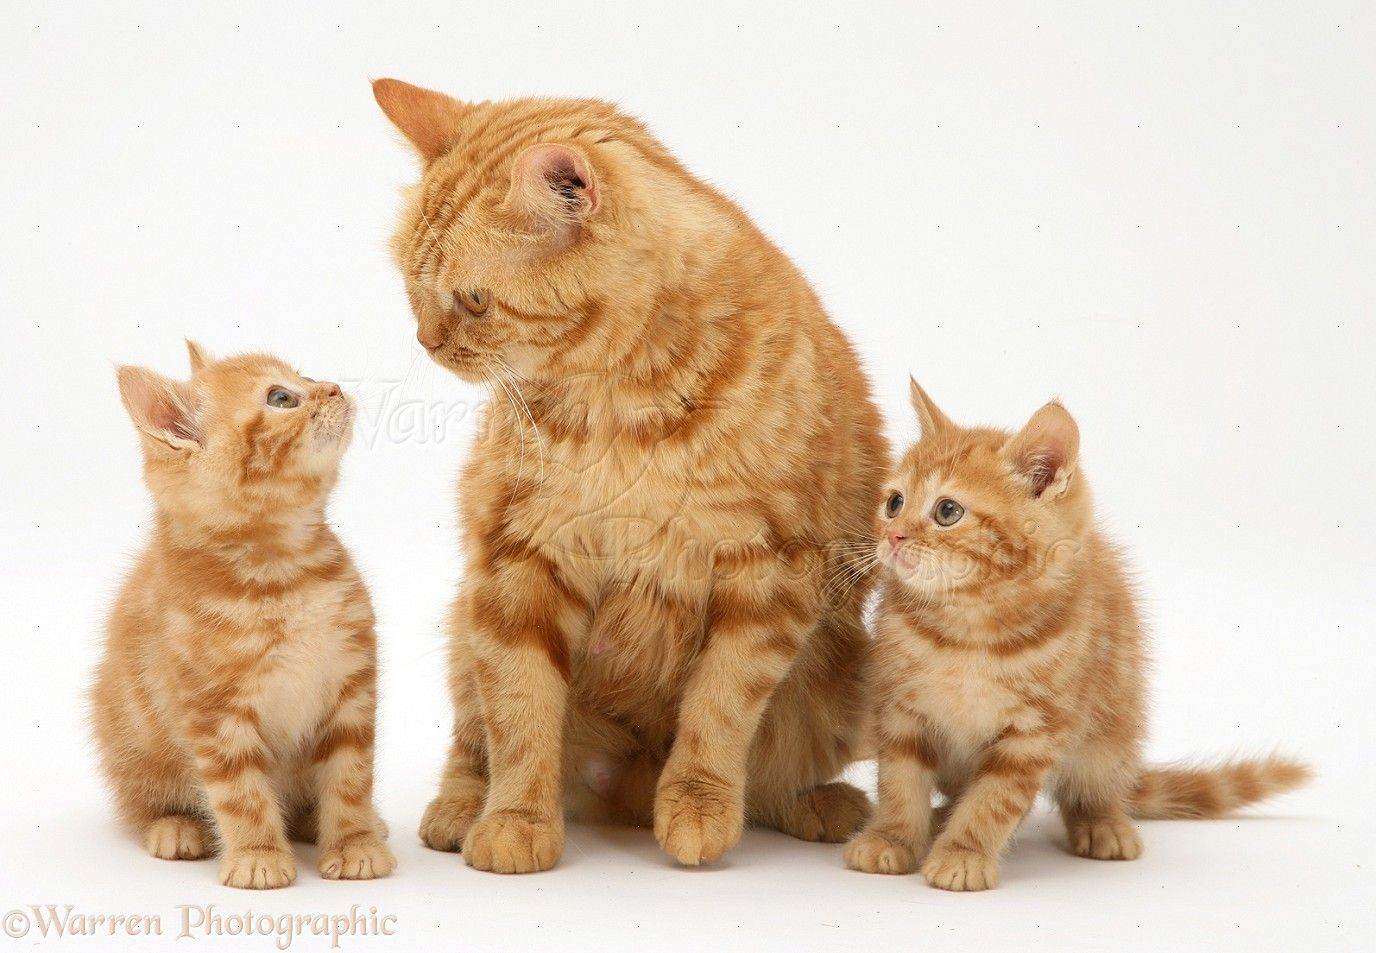 Red Tabby British Shorthair Mother Cat And Kittens Http Ift Tt 2gcpyq6 Cats And Kittens Kittens Orange Tabby Cats